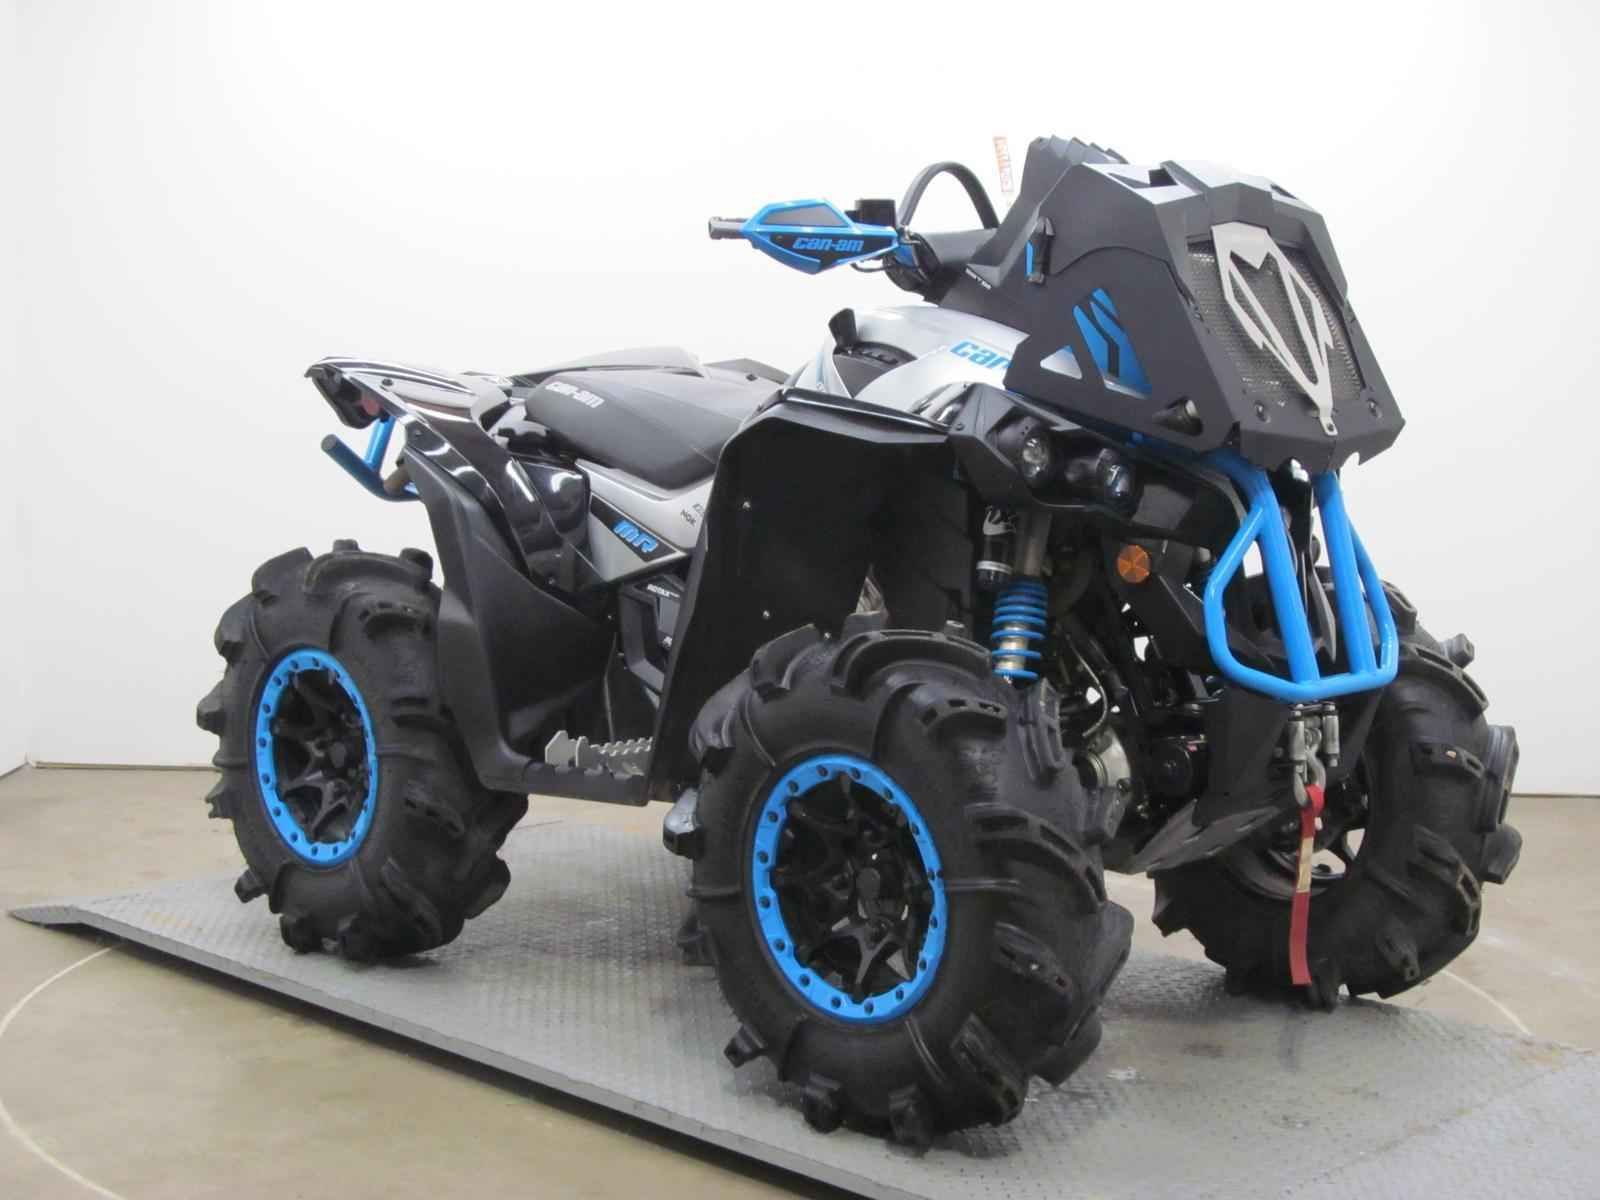 Used 2016 Can Am RENEGADE 1000 X MR ATVs For Sale in Minnesota on